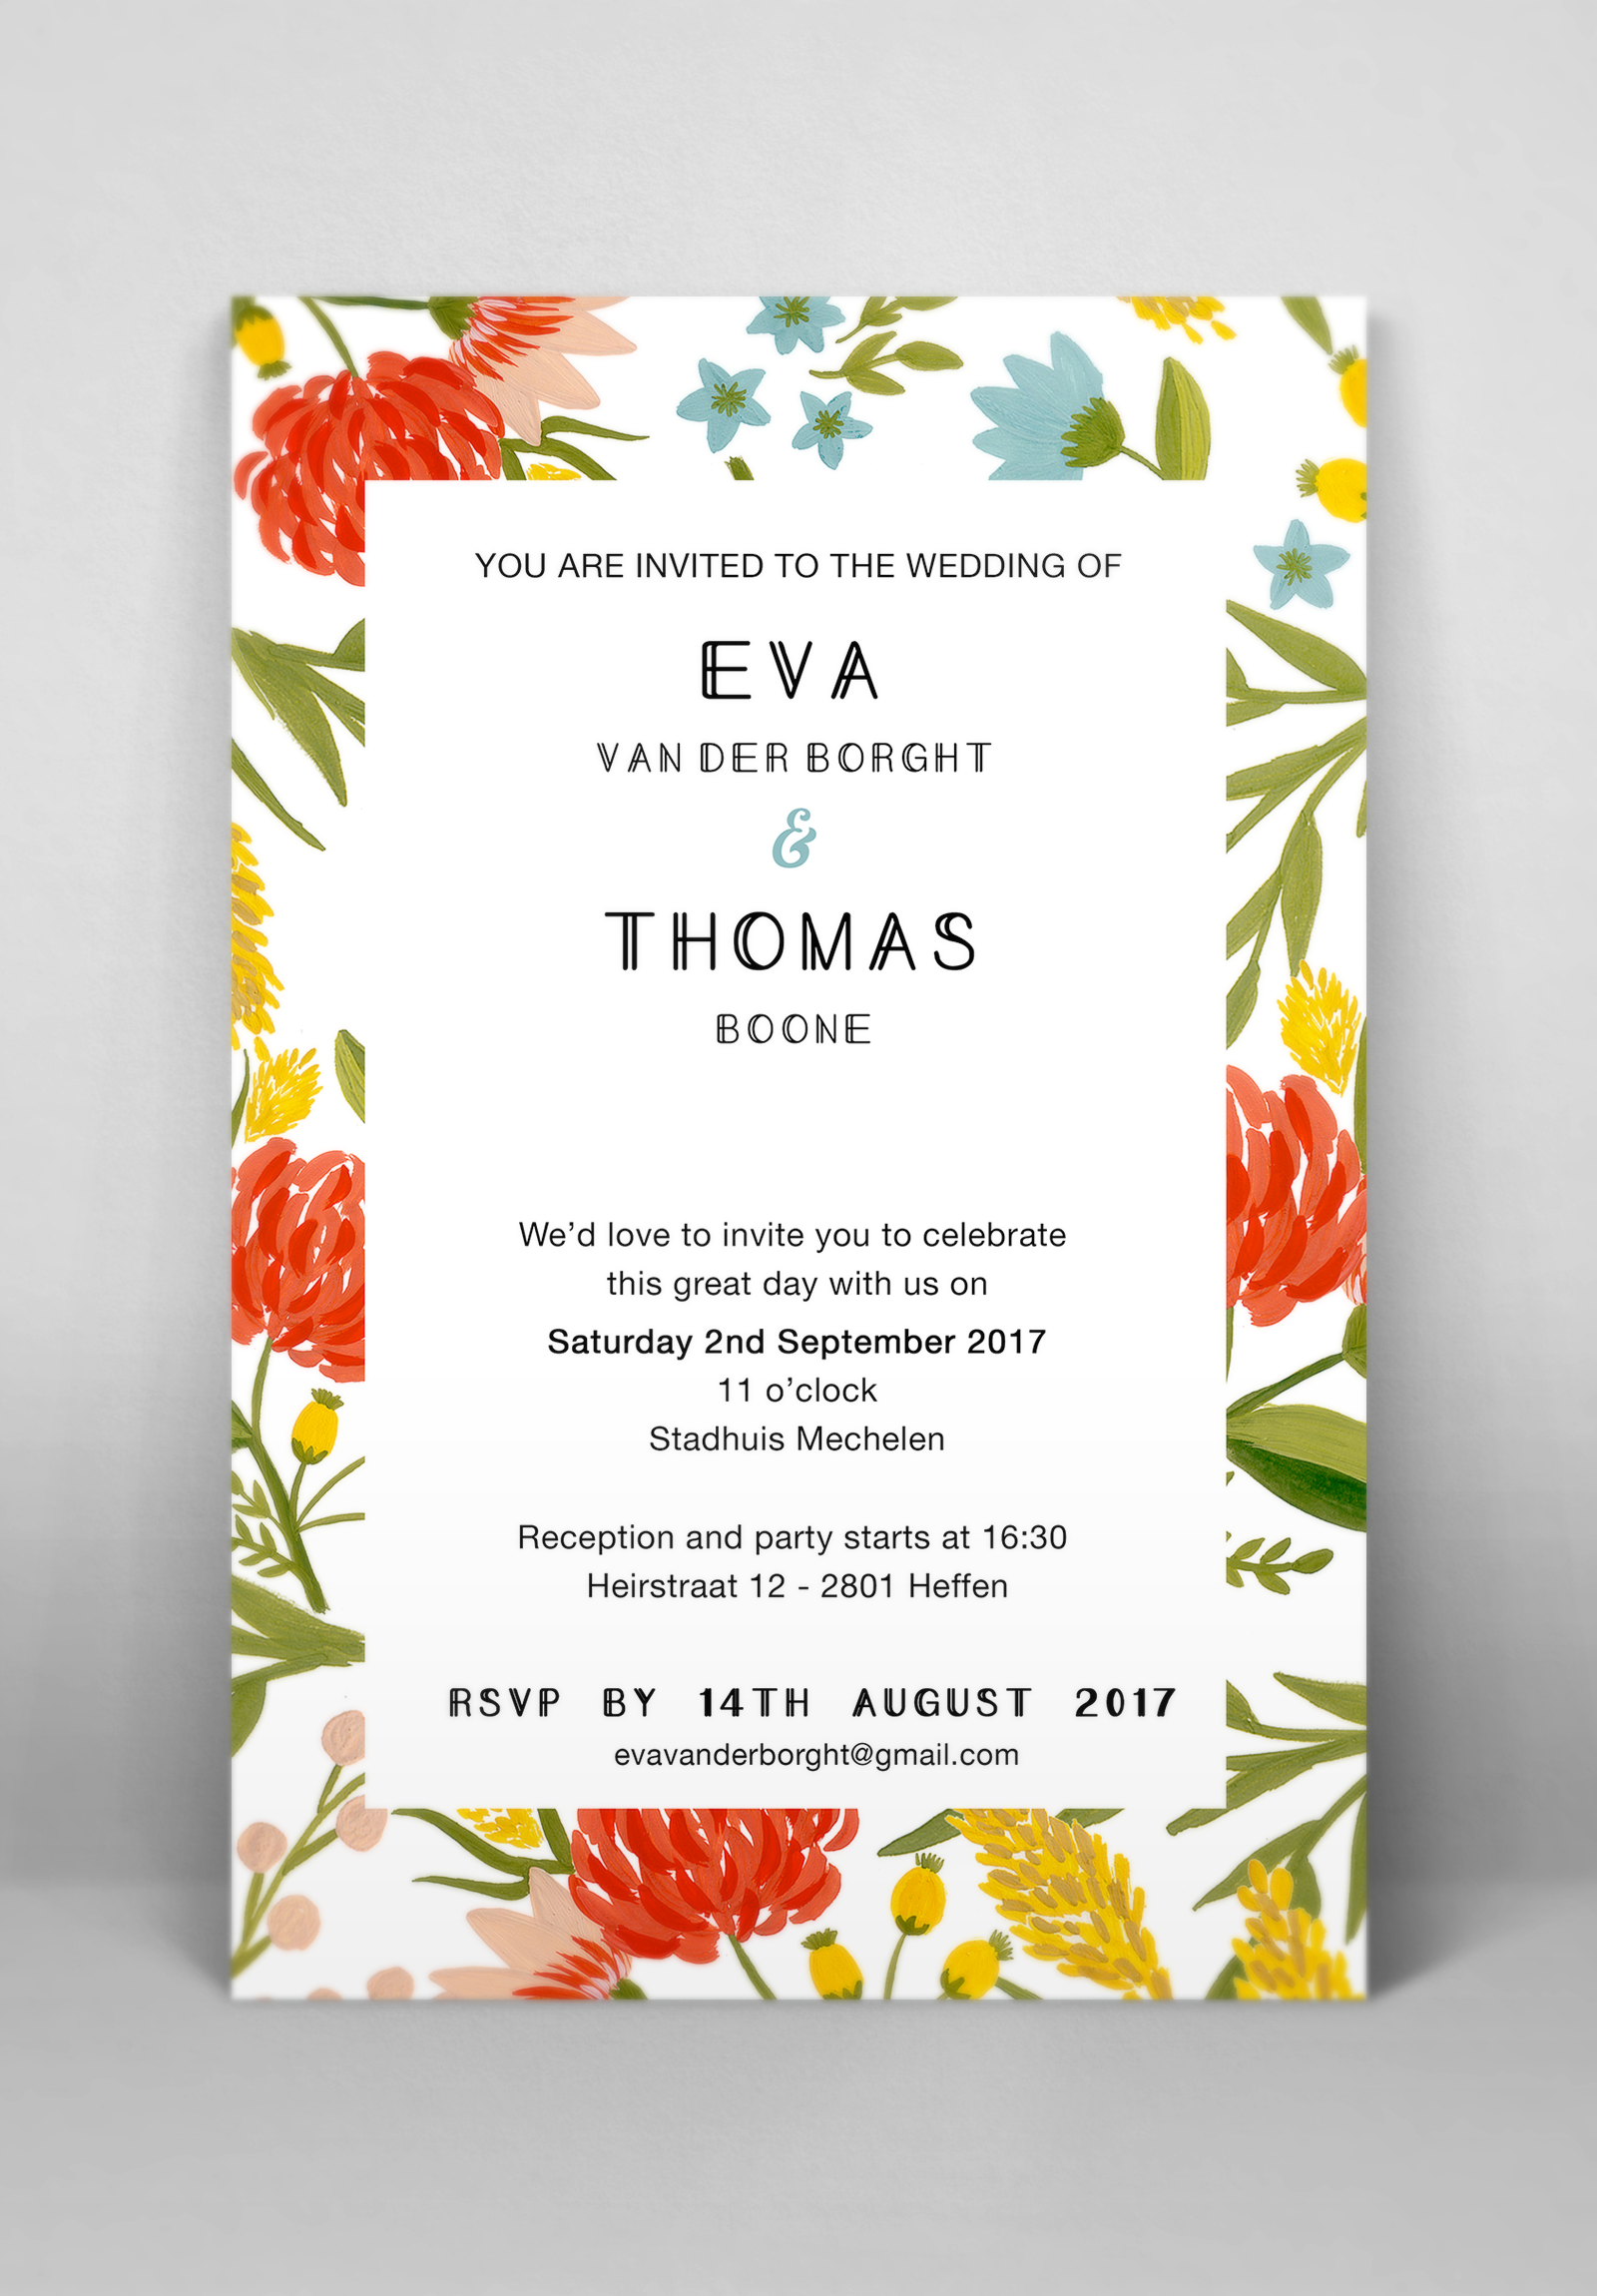 Wedding invitation and stationary floral design - Eva B.